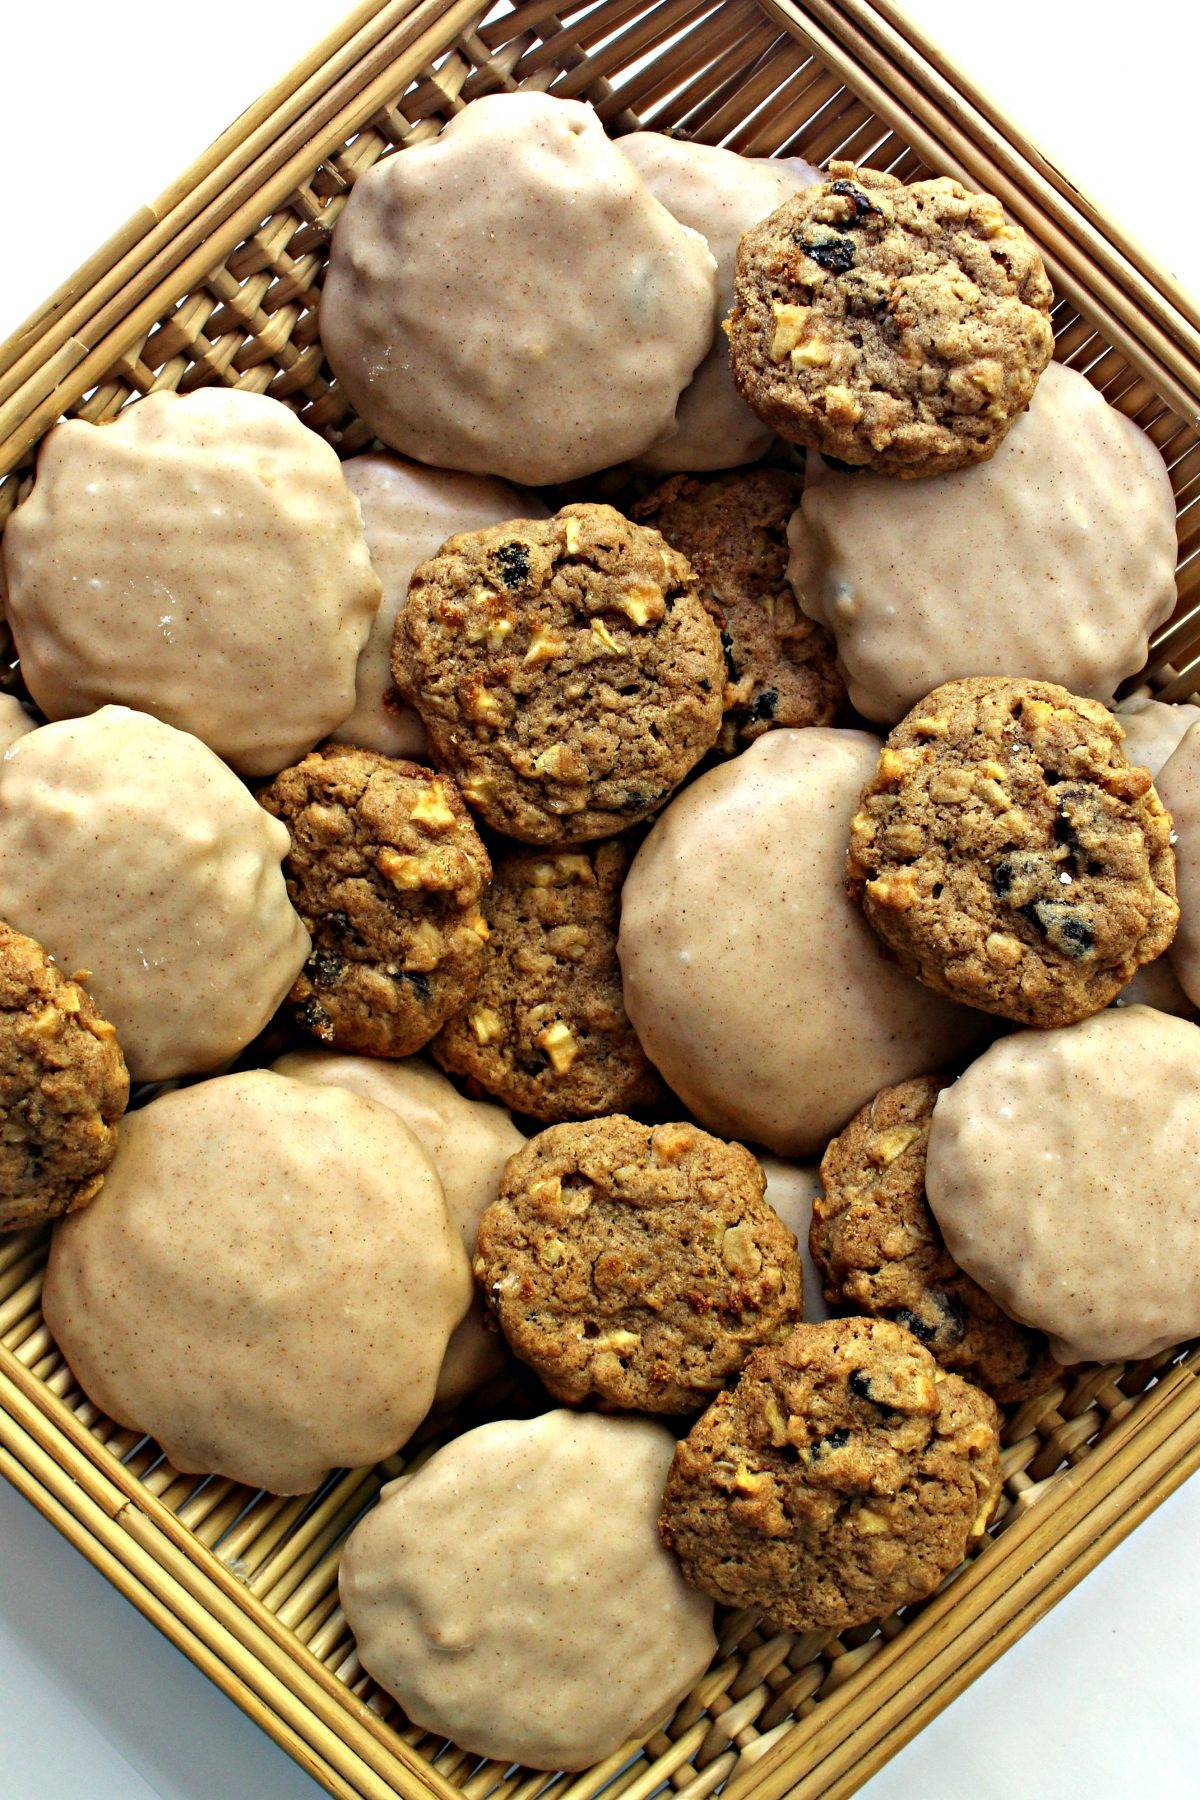 Apple Raisin Oatmeal Cookies, some plain and some iced, in a square basket.